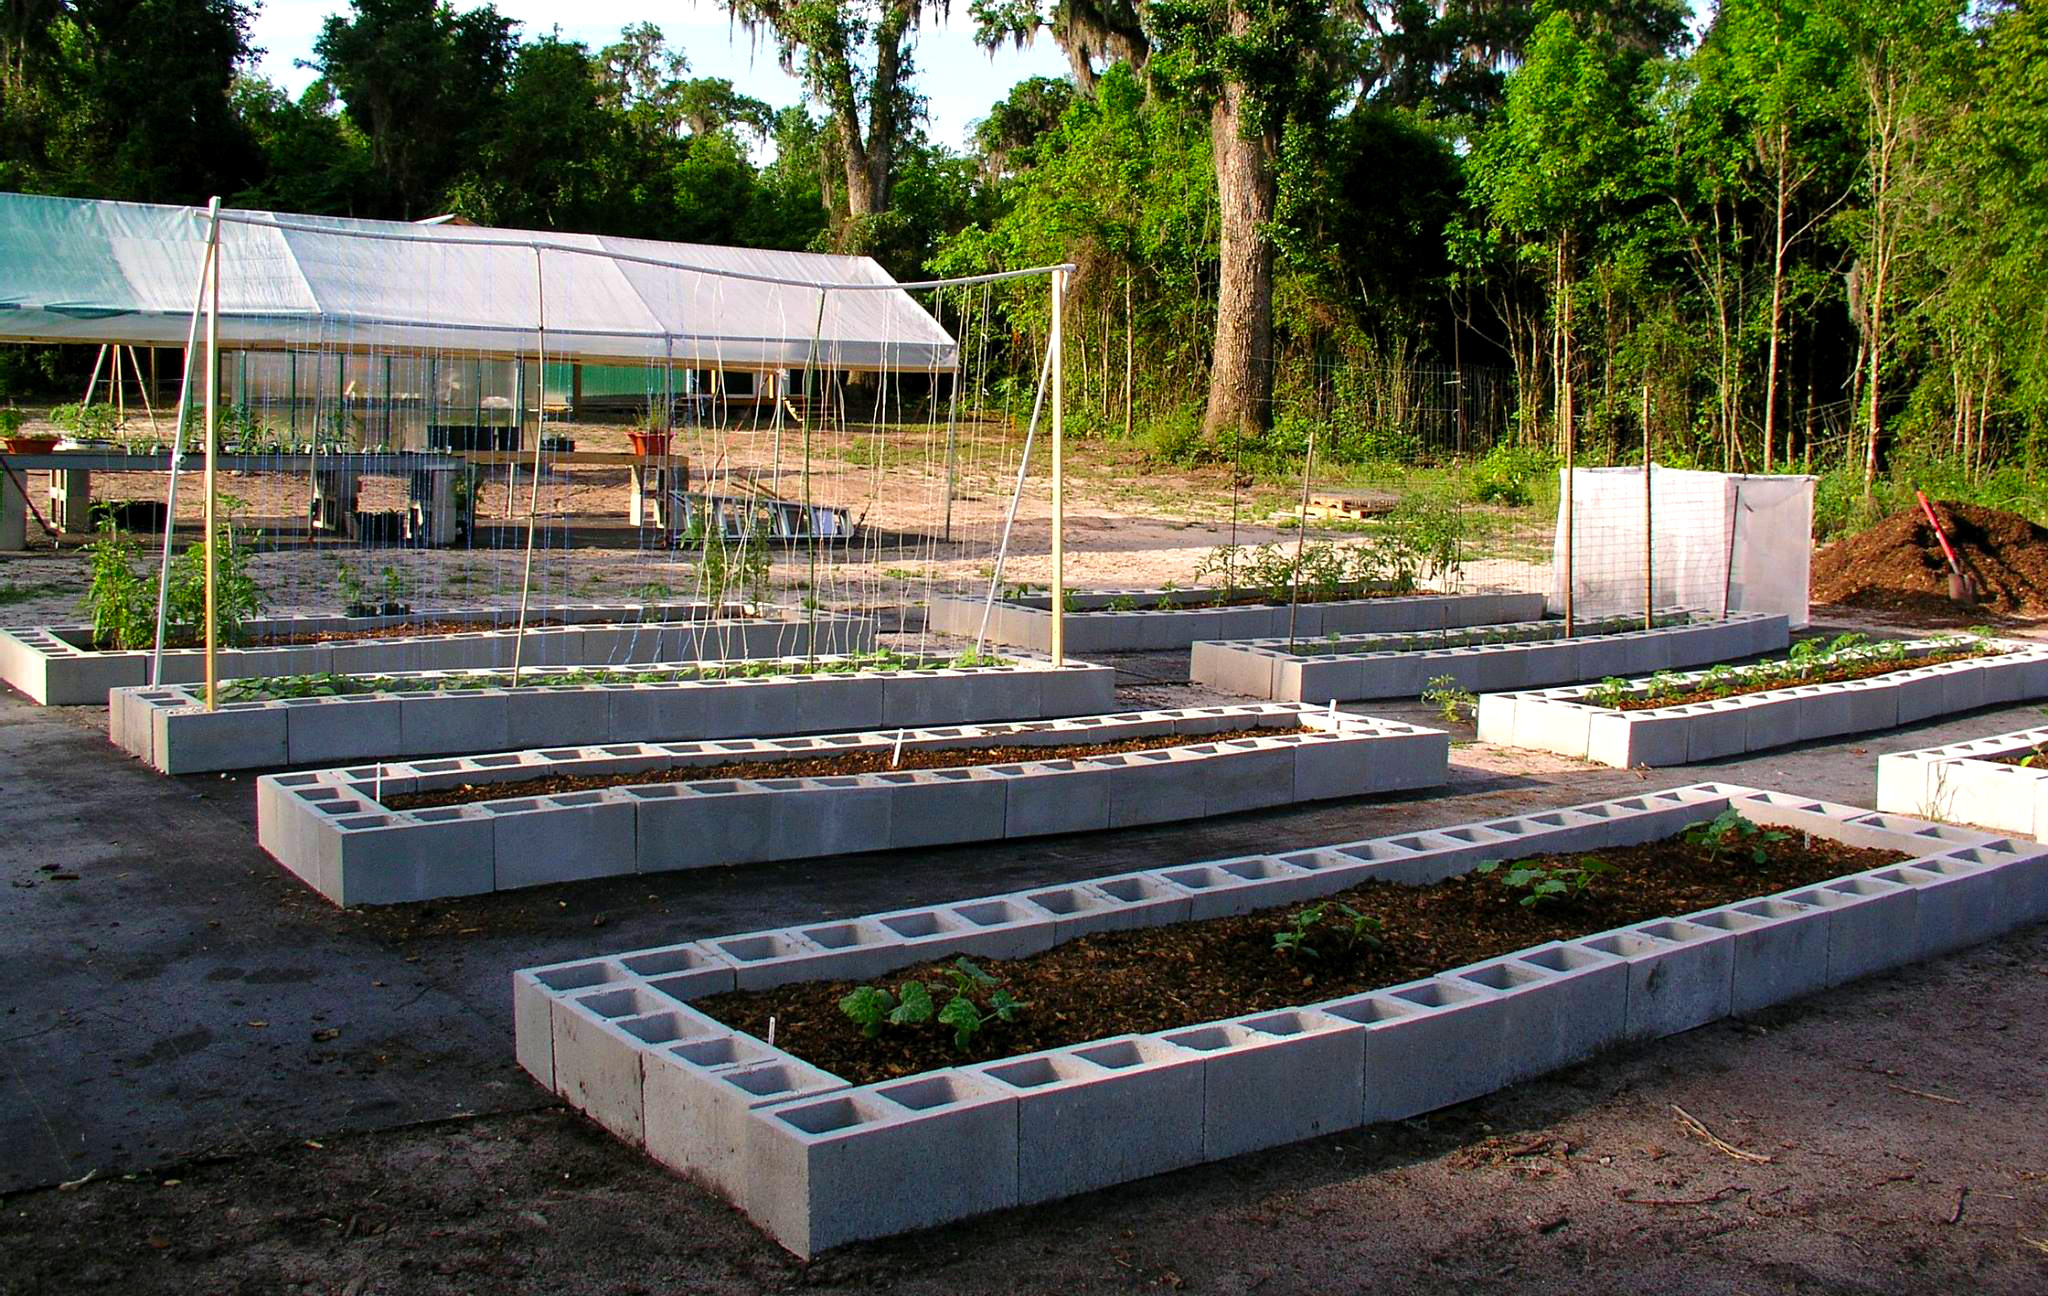 Florida raised beds gardens growin 39 crazy acres for Cinder block pond